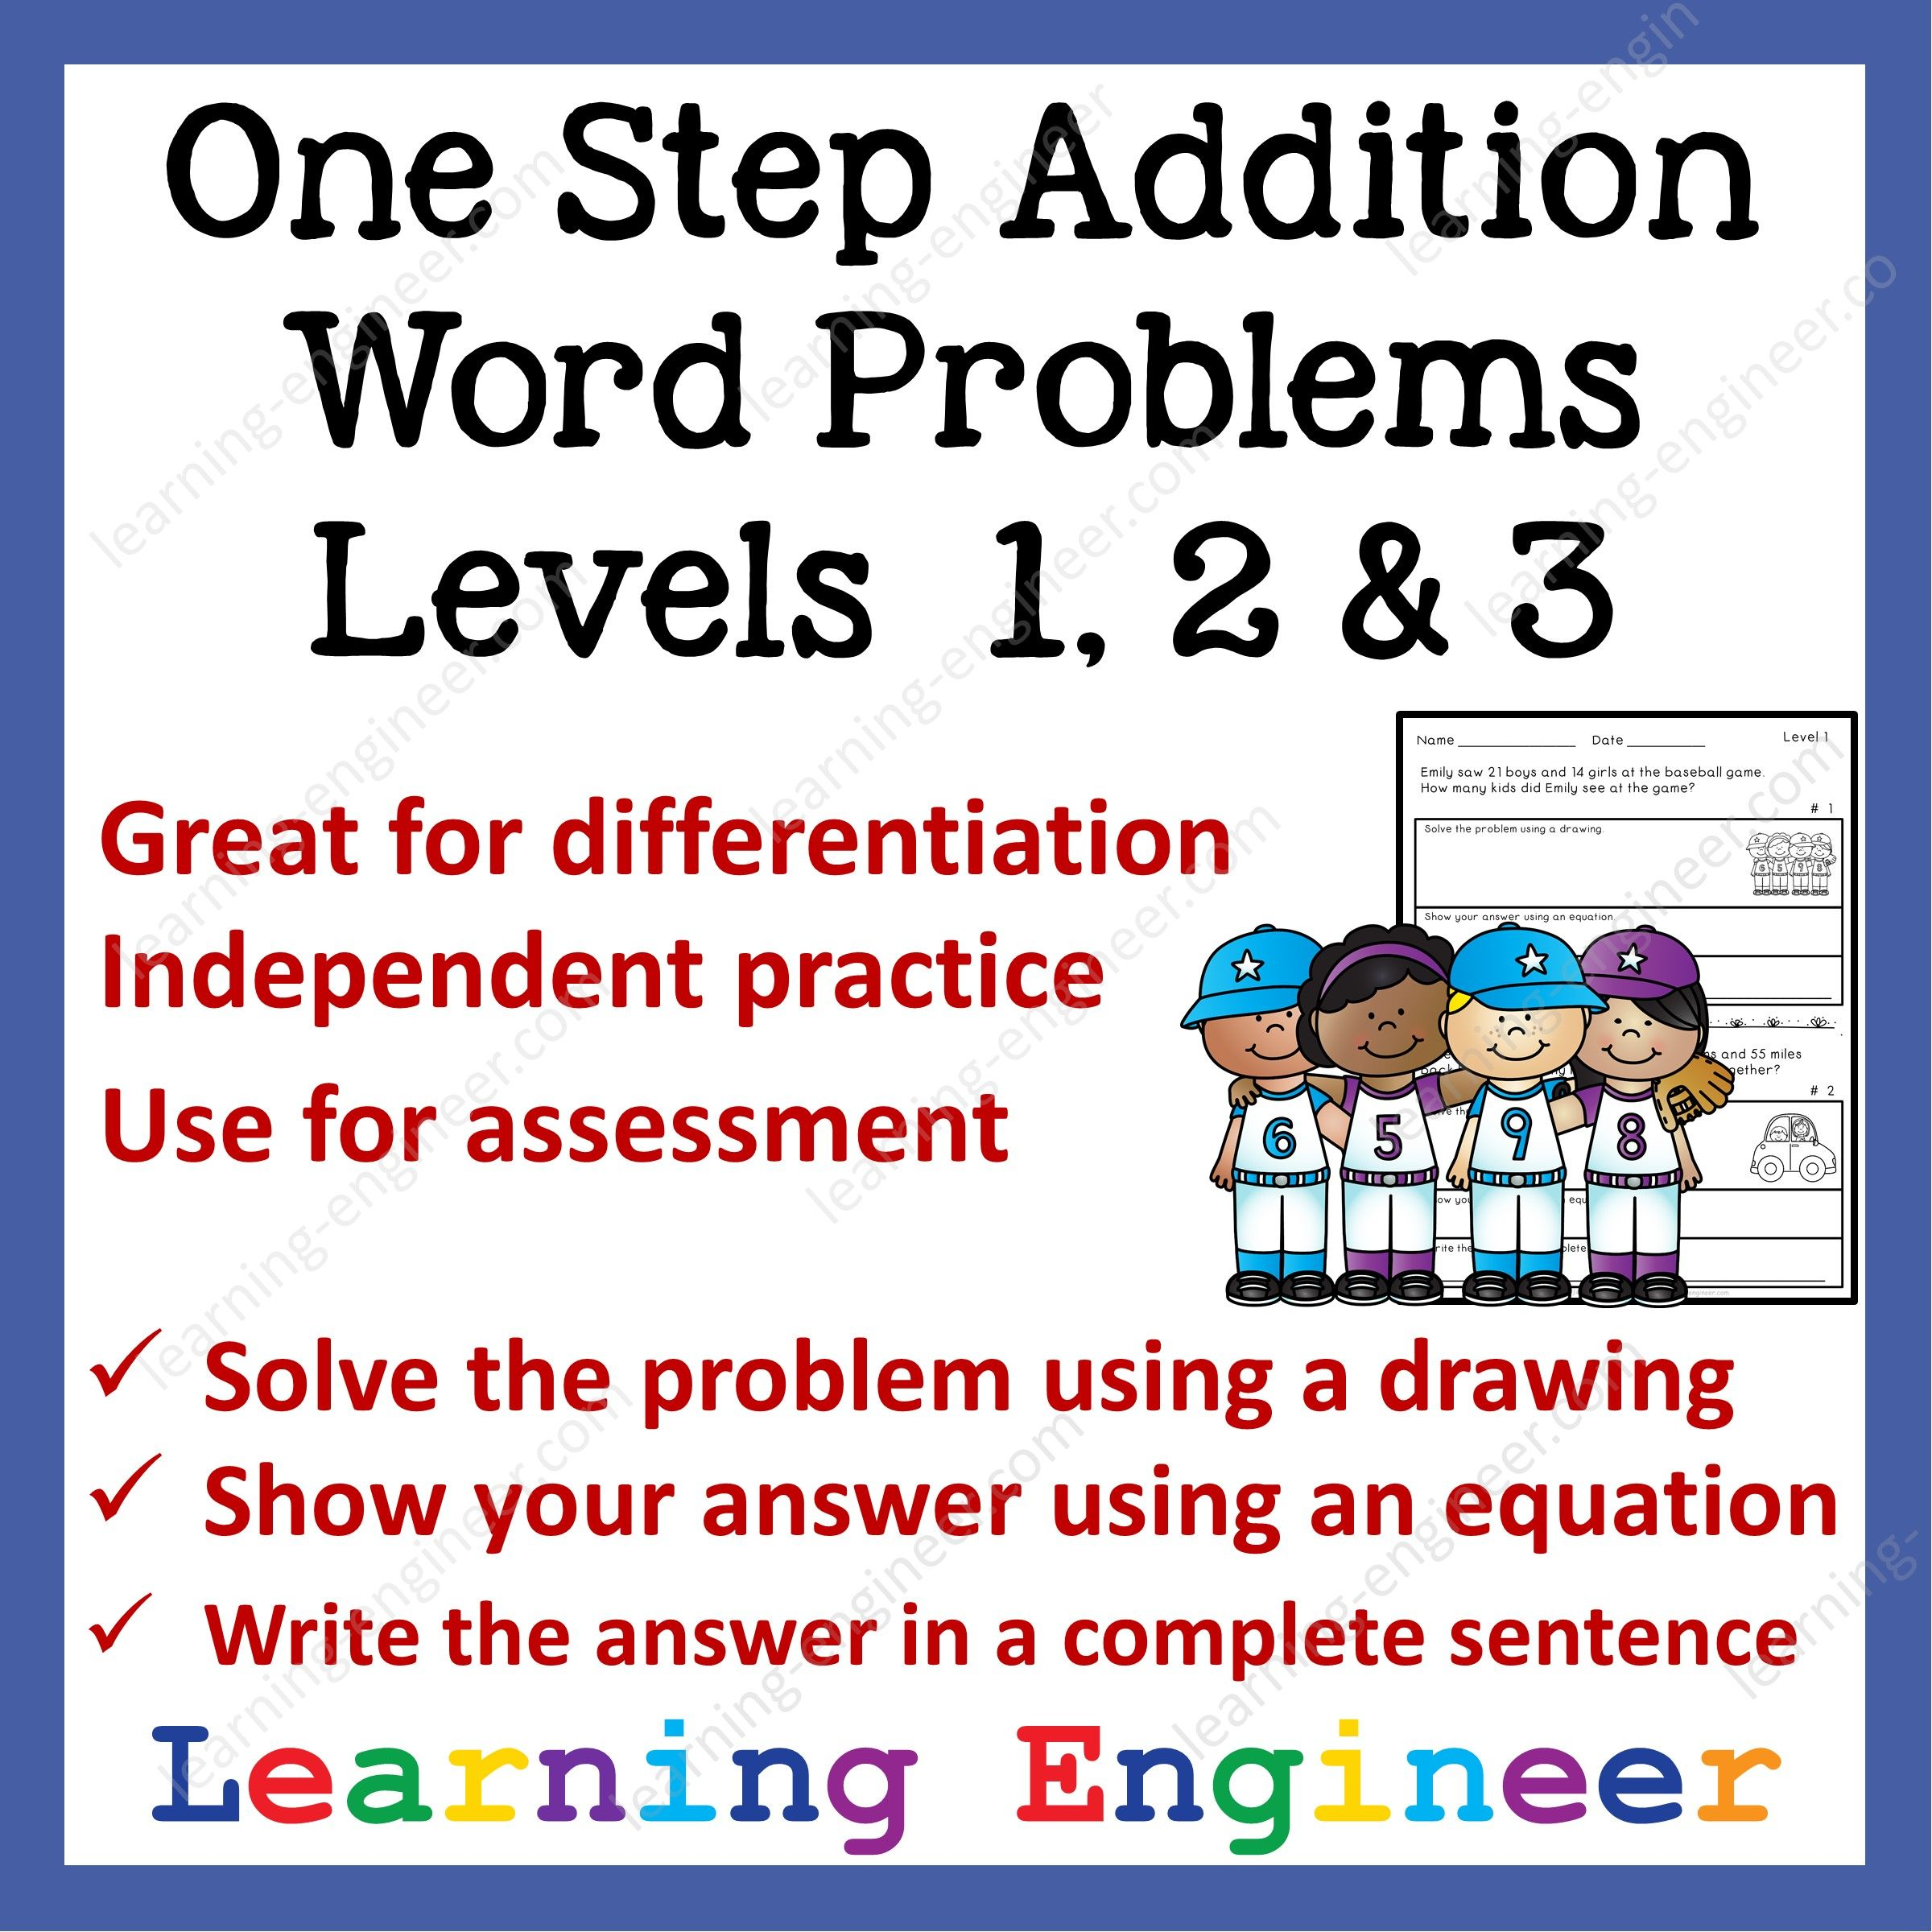 One Step Addition Word Problems Levels 1 2 Amp 3 From